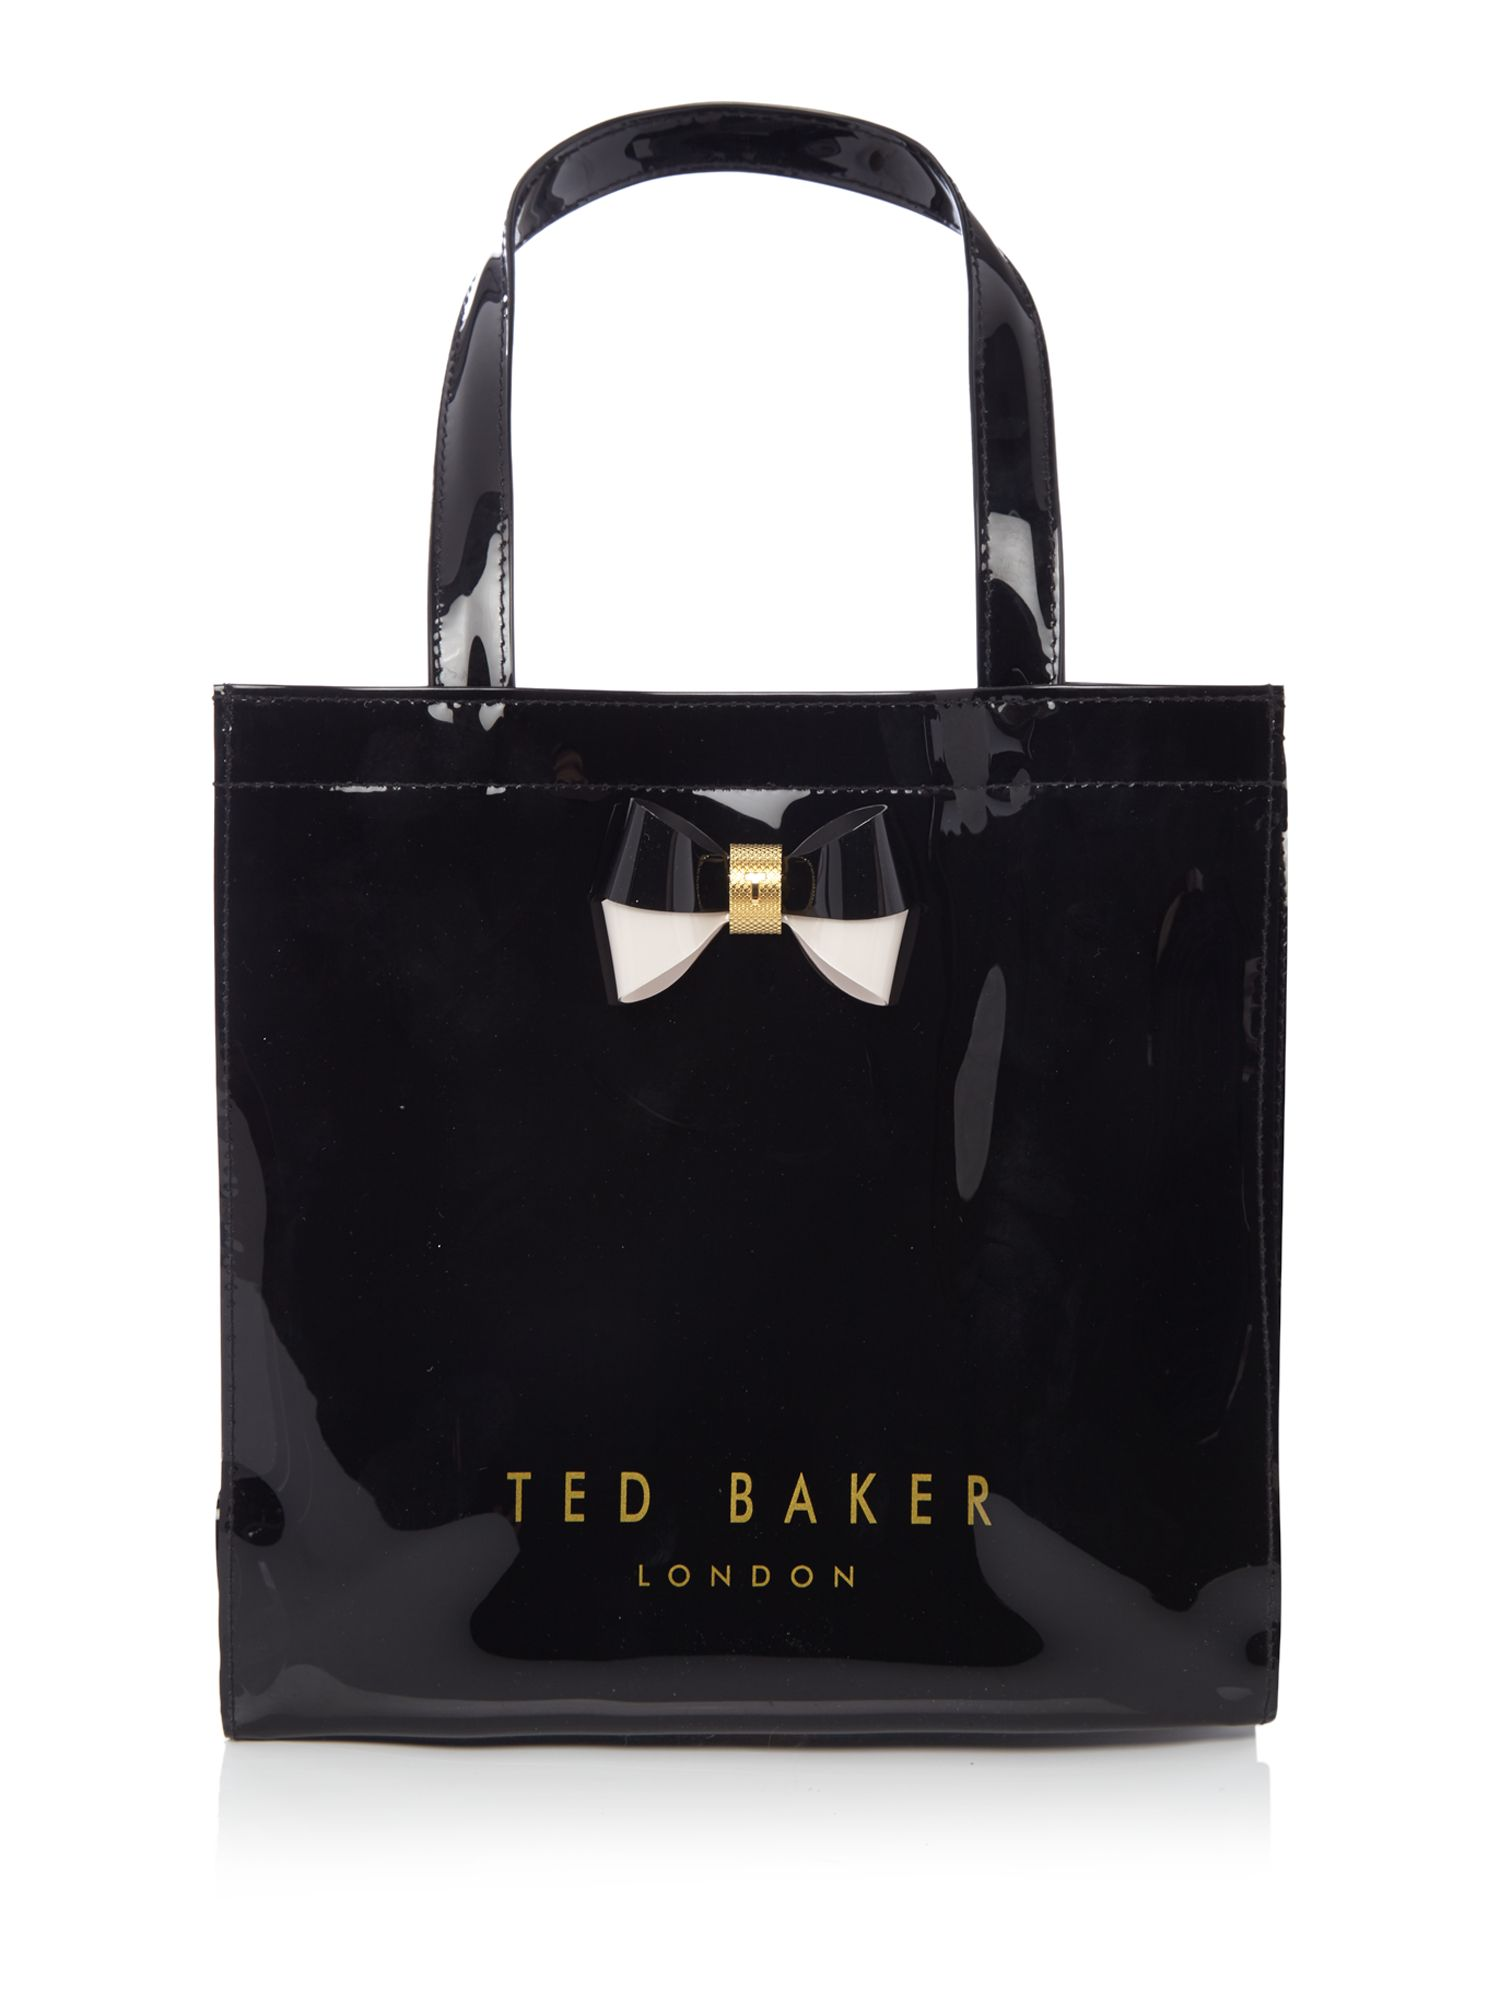 TED BAKER FOR SALE has 1, members. Ted Baker Items for sale or wanted only Rules: All photos of items for sale must be your own pictures that you.